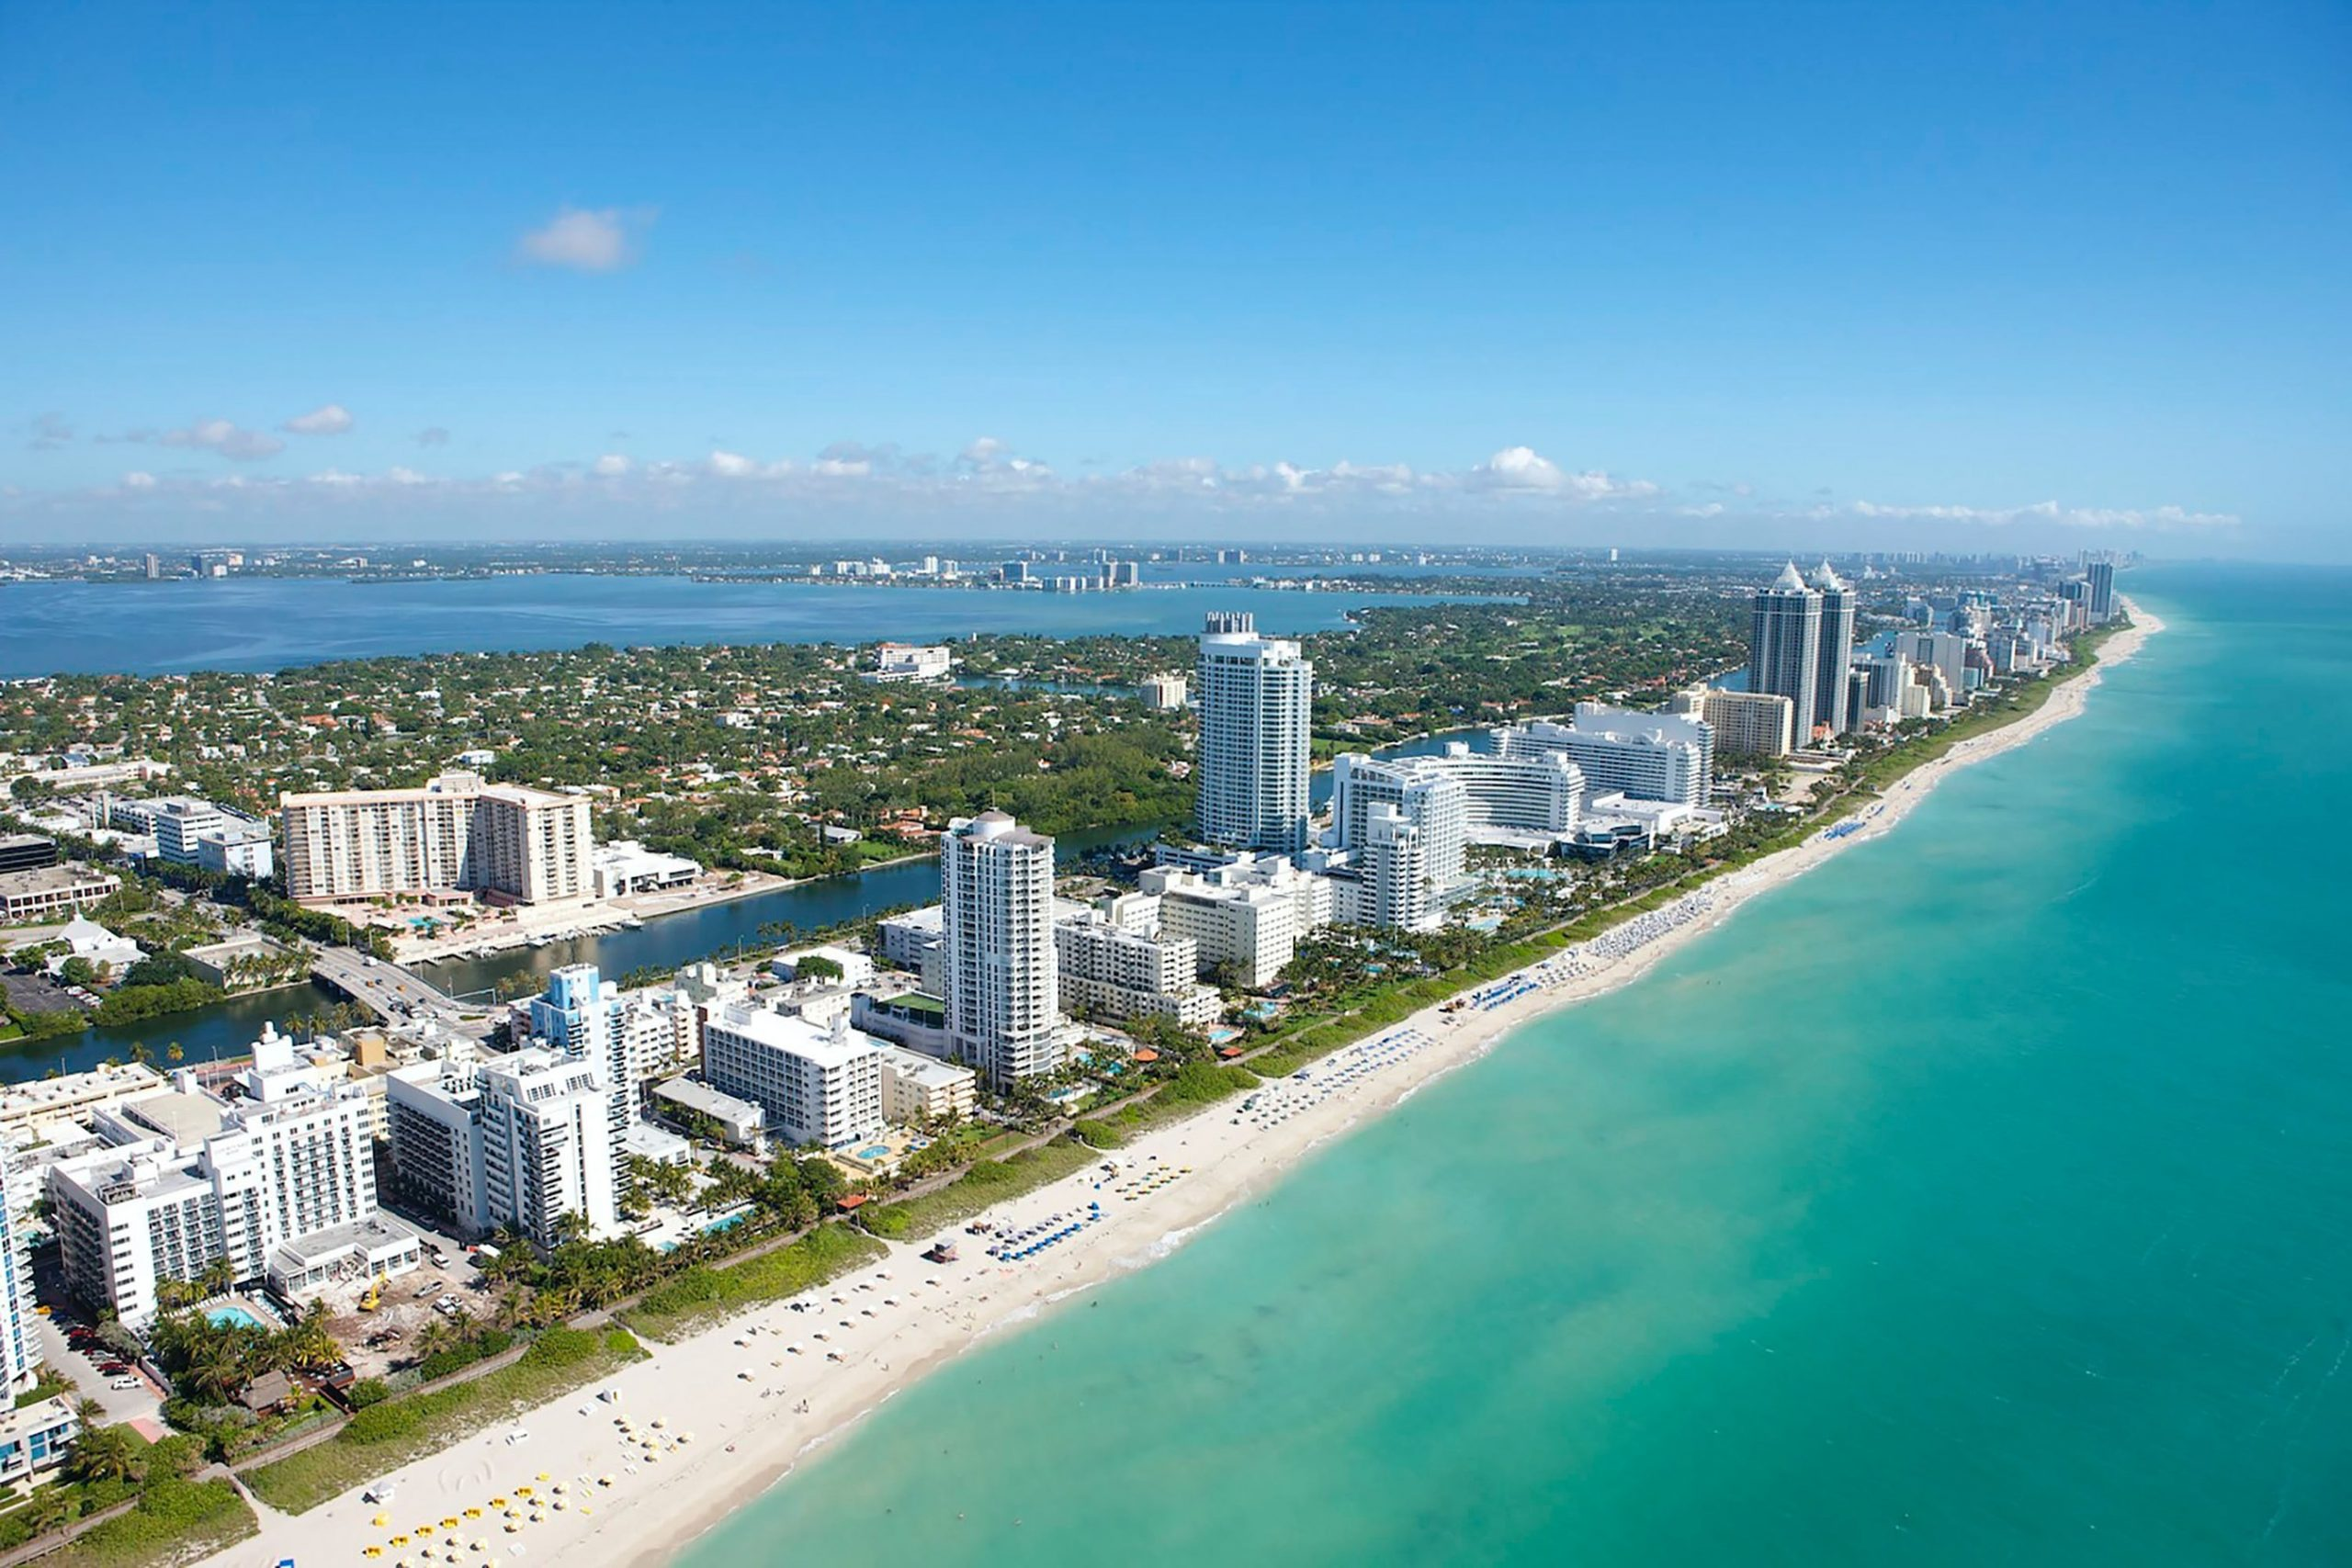 Miami Beach continues to be an award-winning city in 2020 for its unparalleled culinary offerings, rich culture, notable public art, a collection of plush hotels, and some of the world's best spas and beaches.